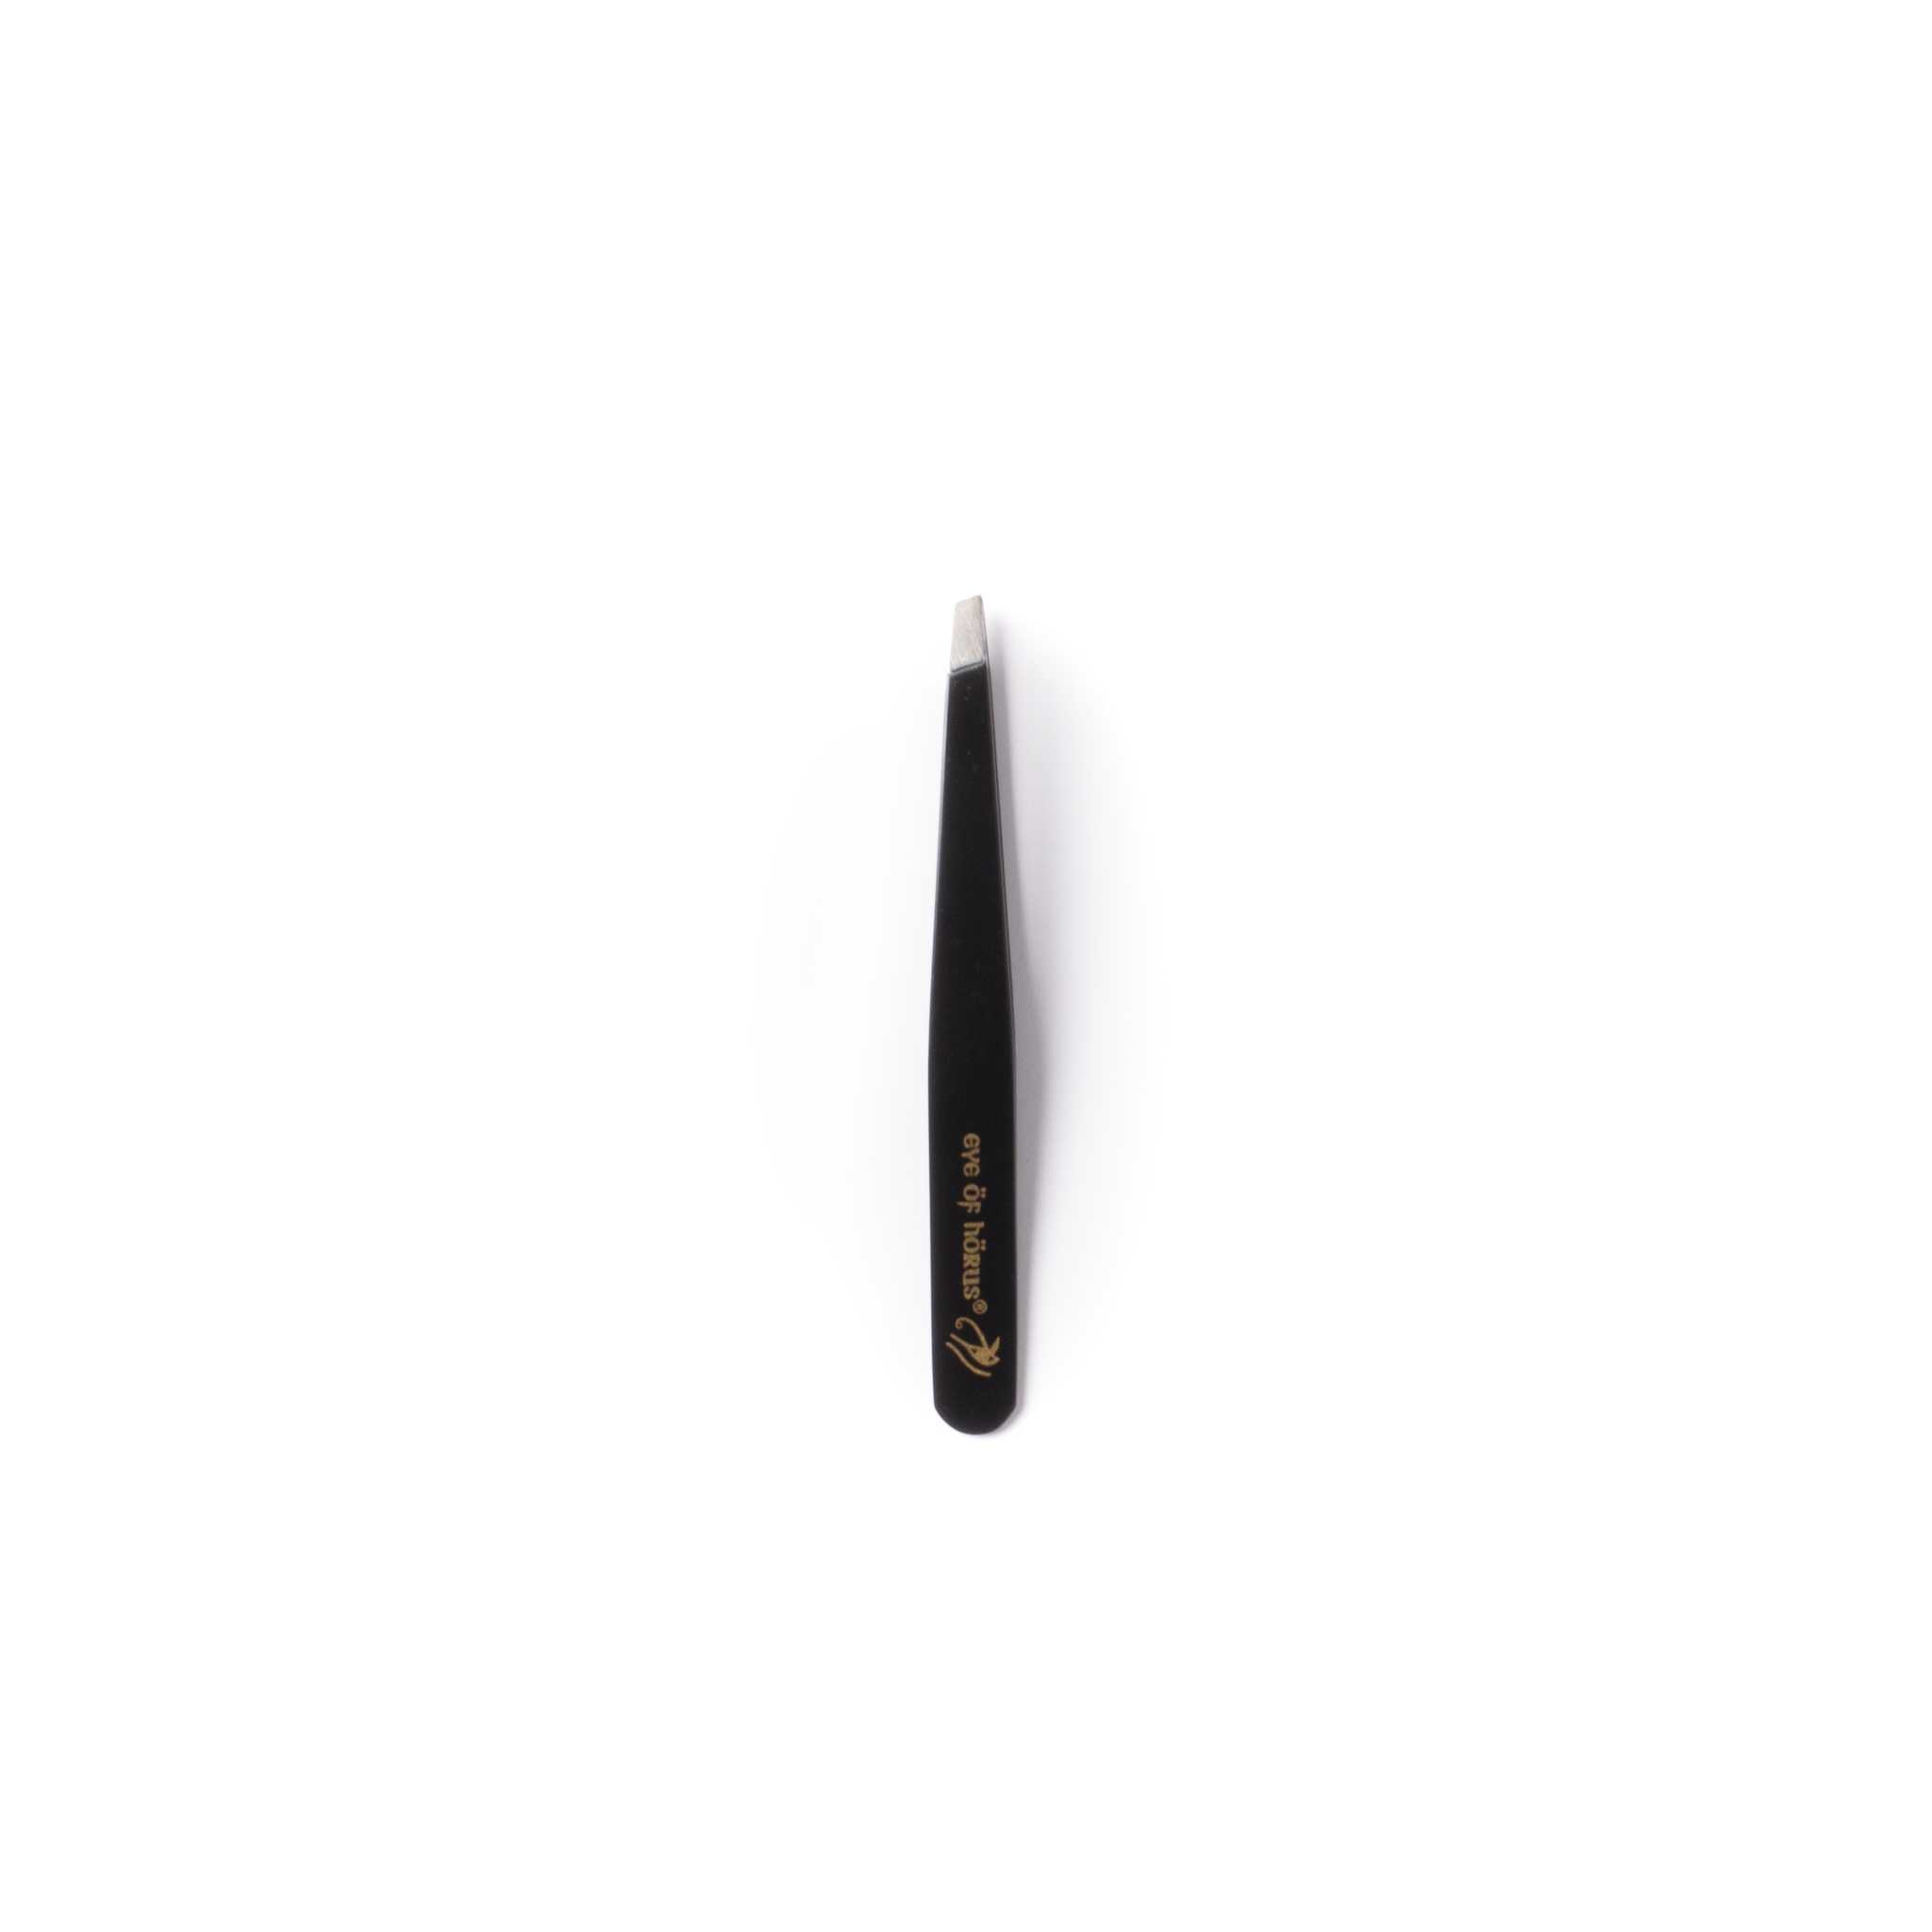 Eye of Horus Tweezers